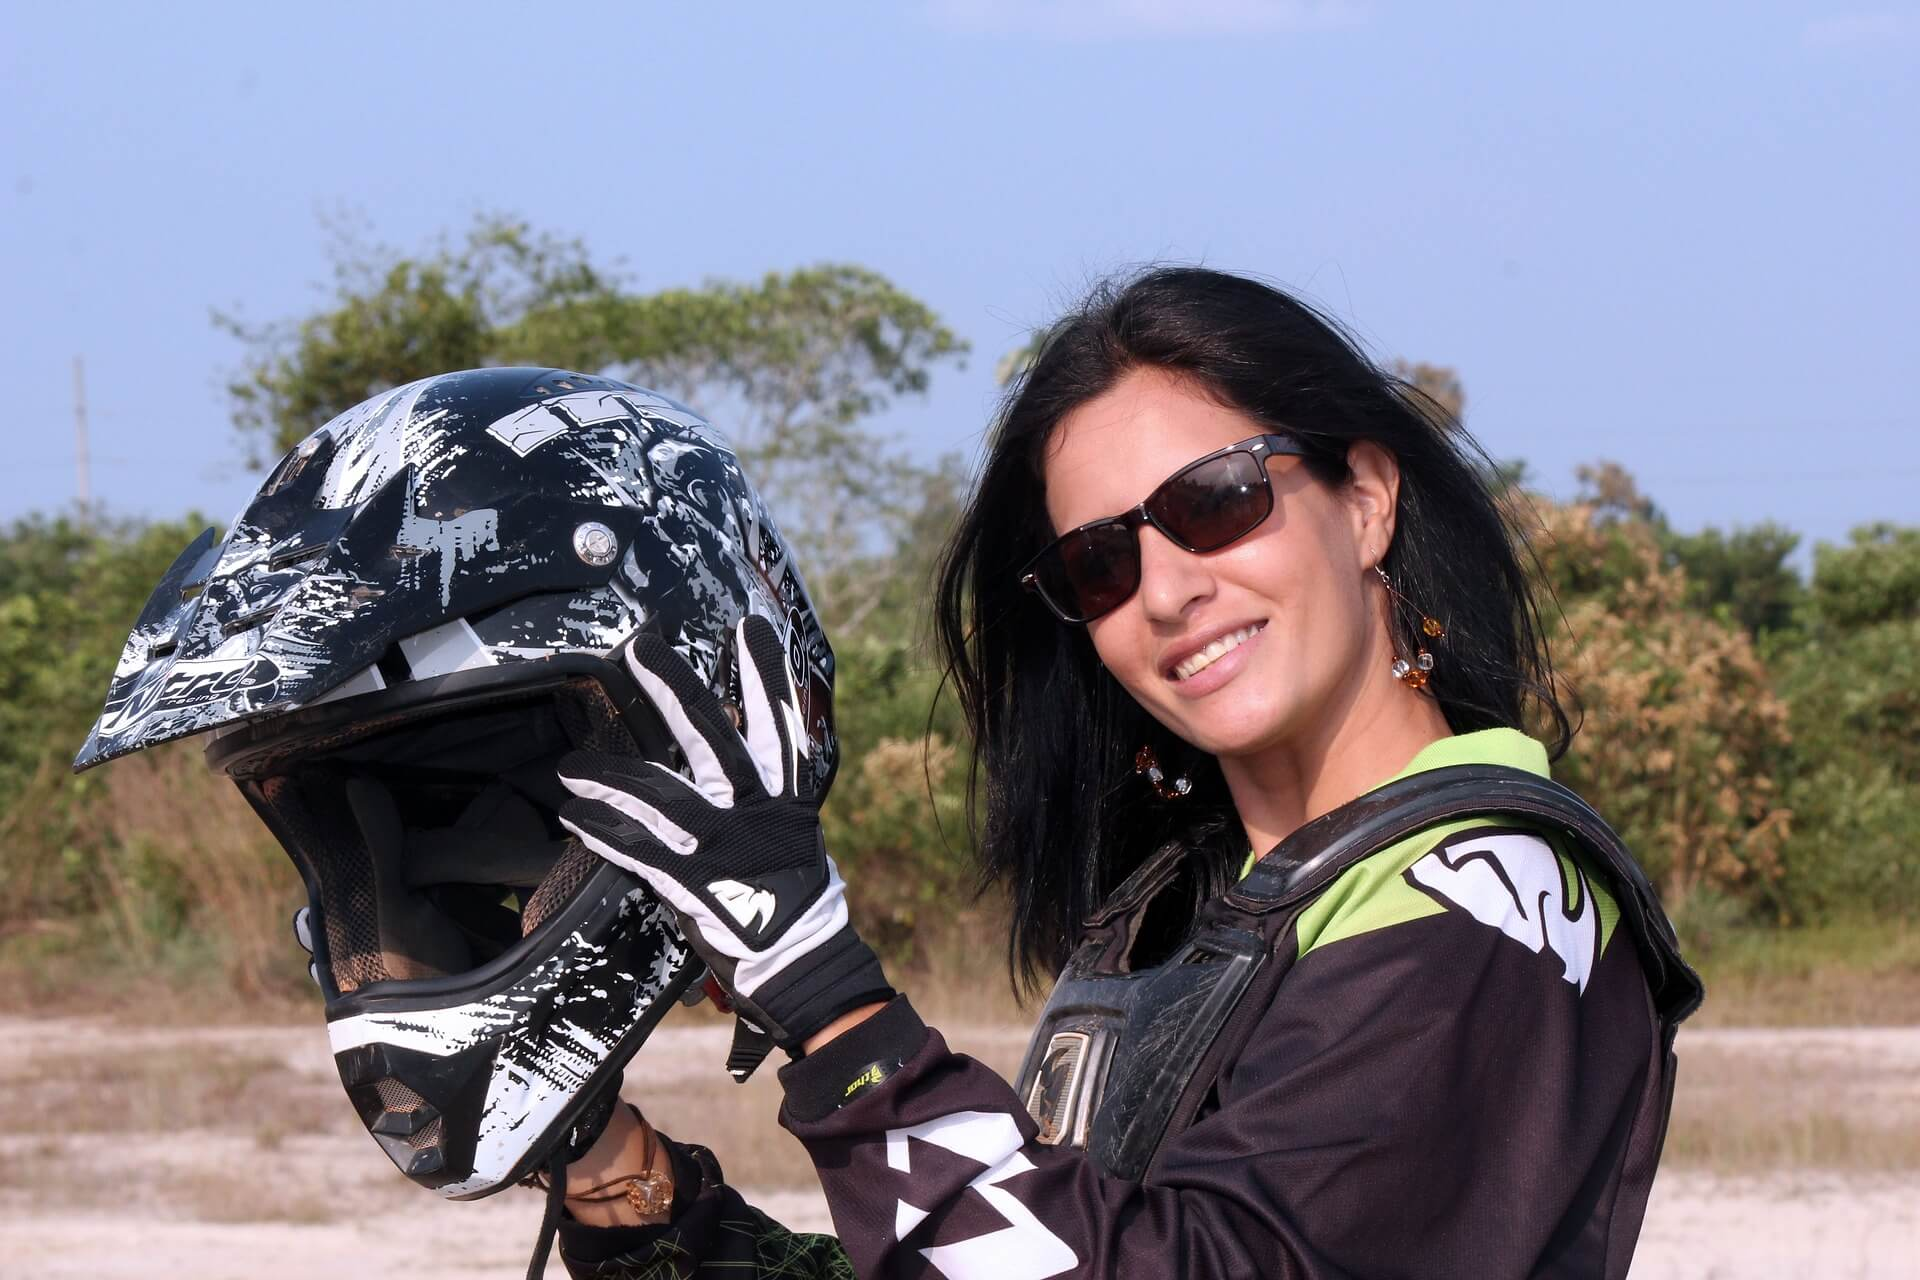 more female motorcycle riders